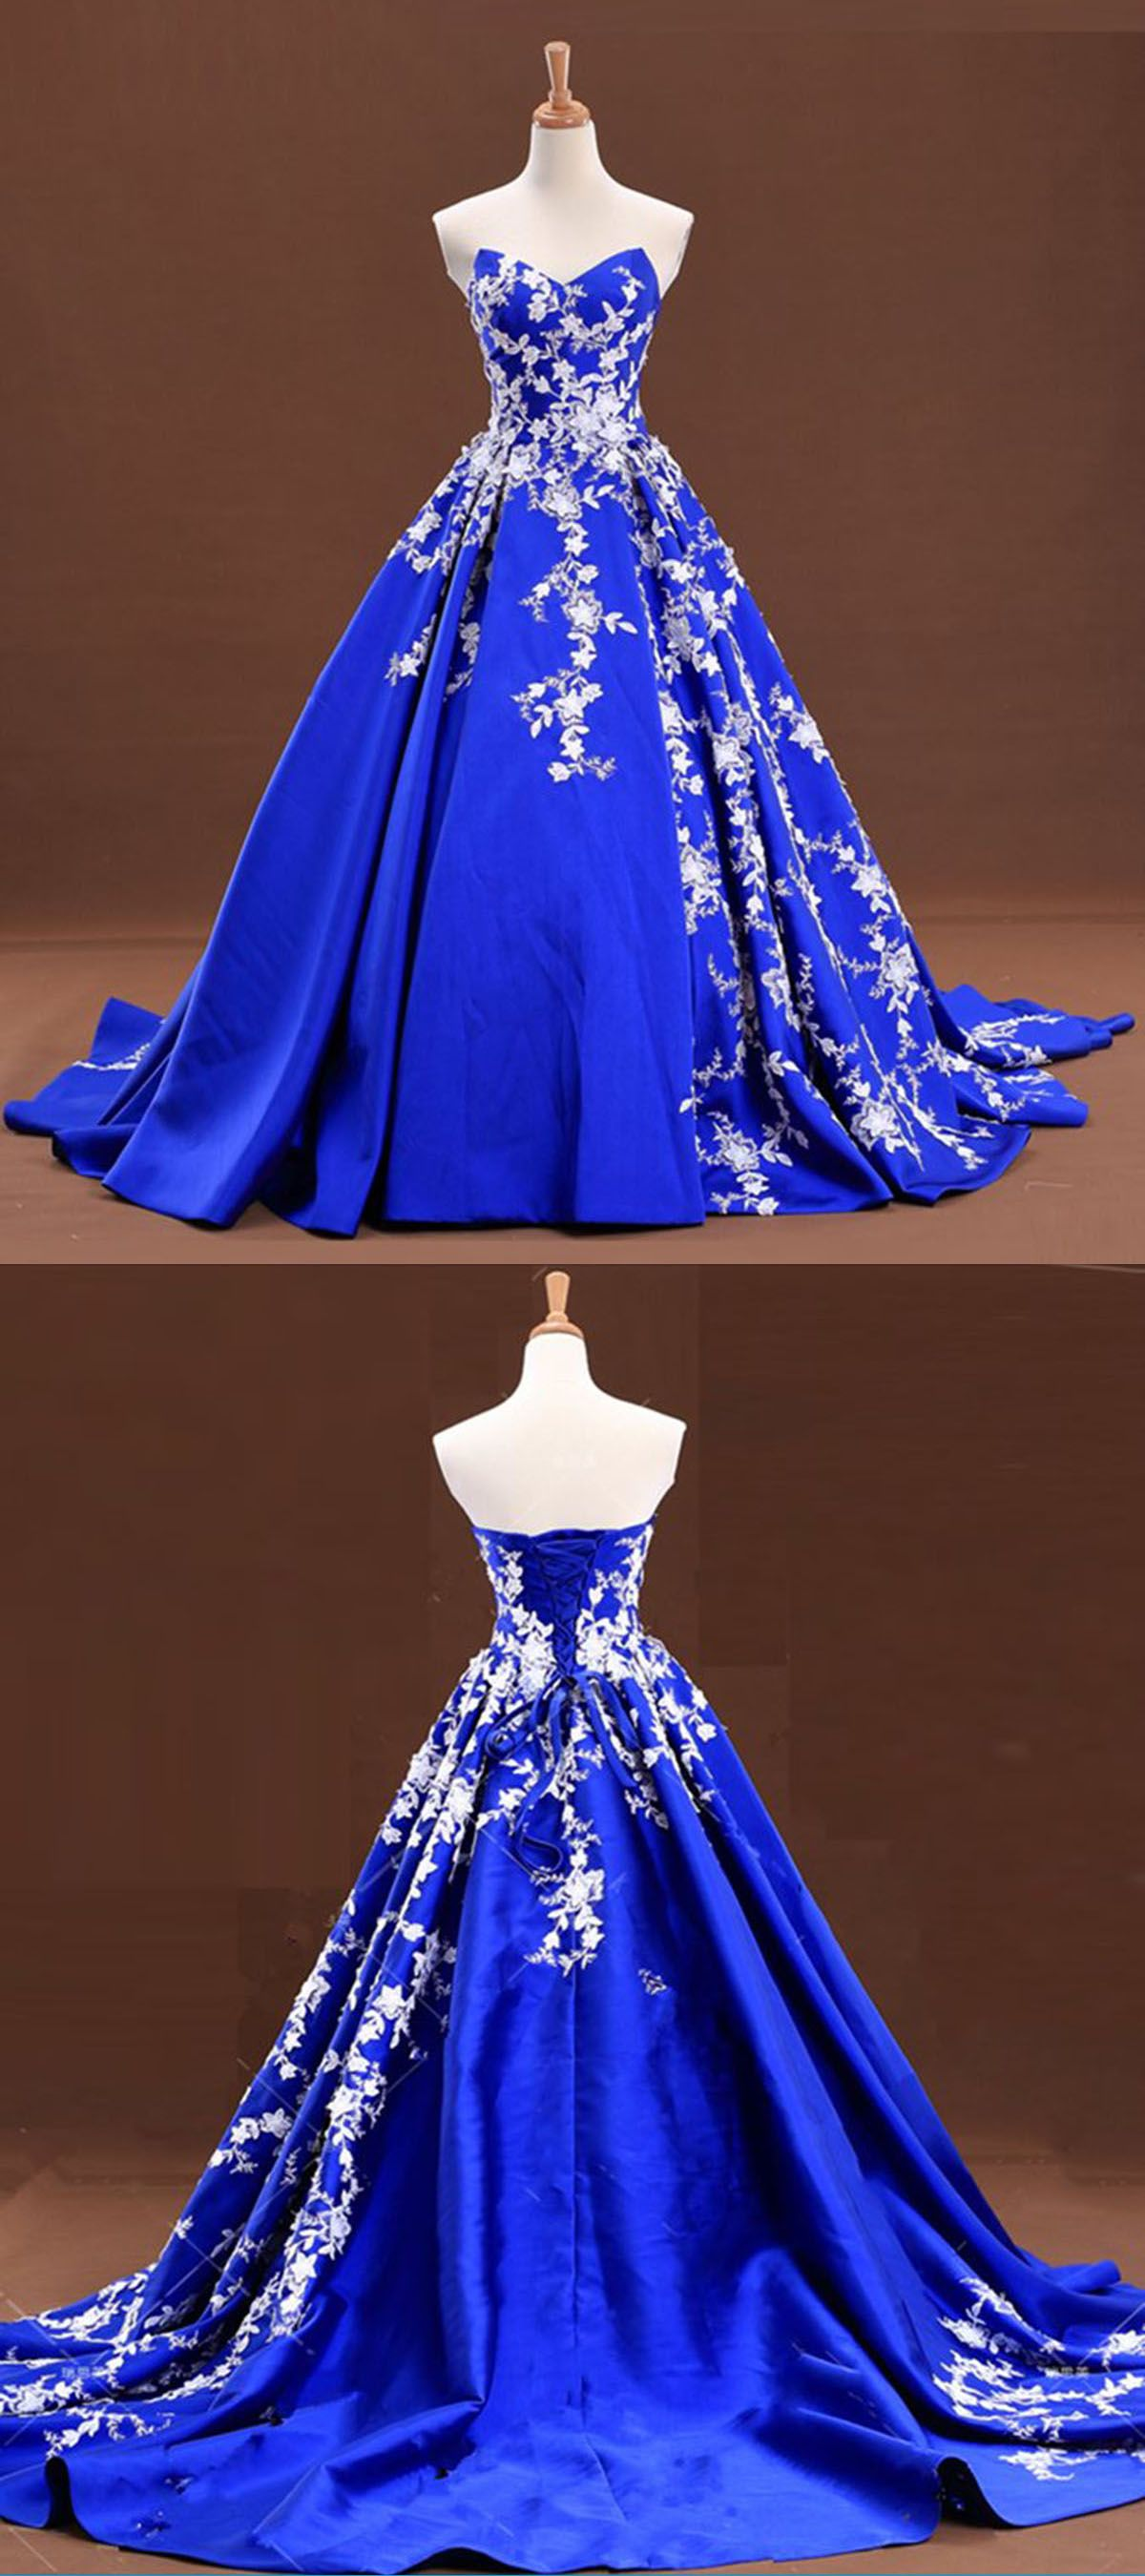 Sweetheart neck royal blue satin long senior prom dress with lace